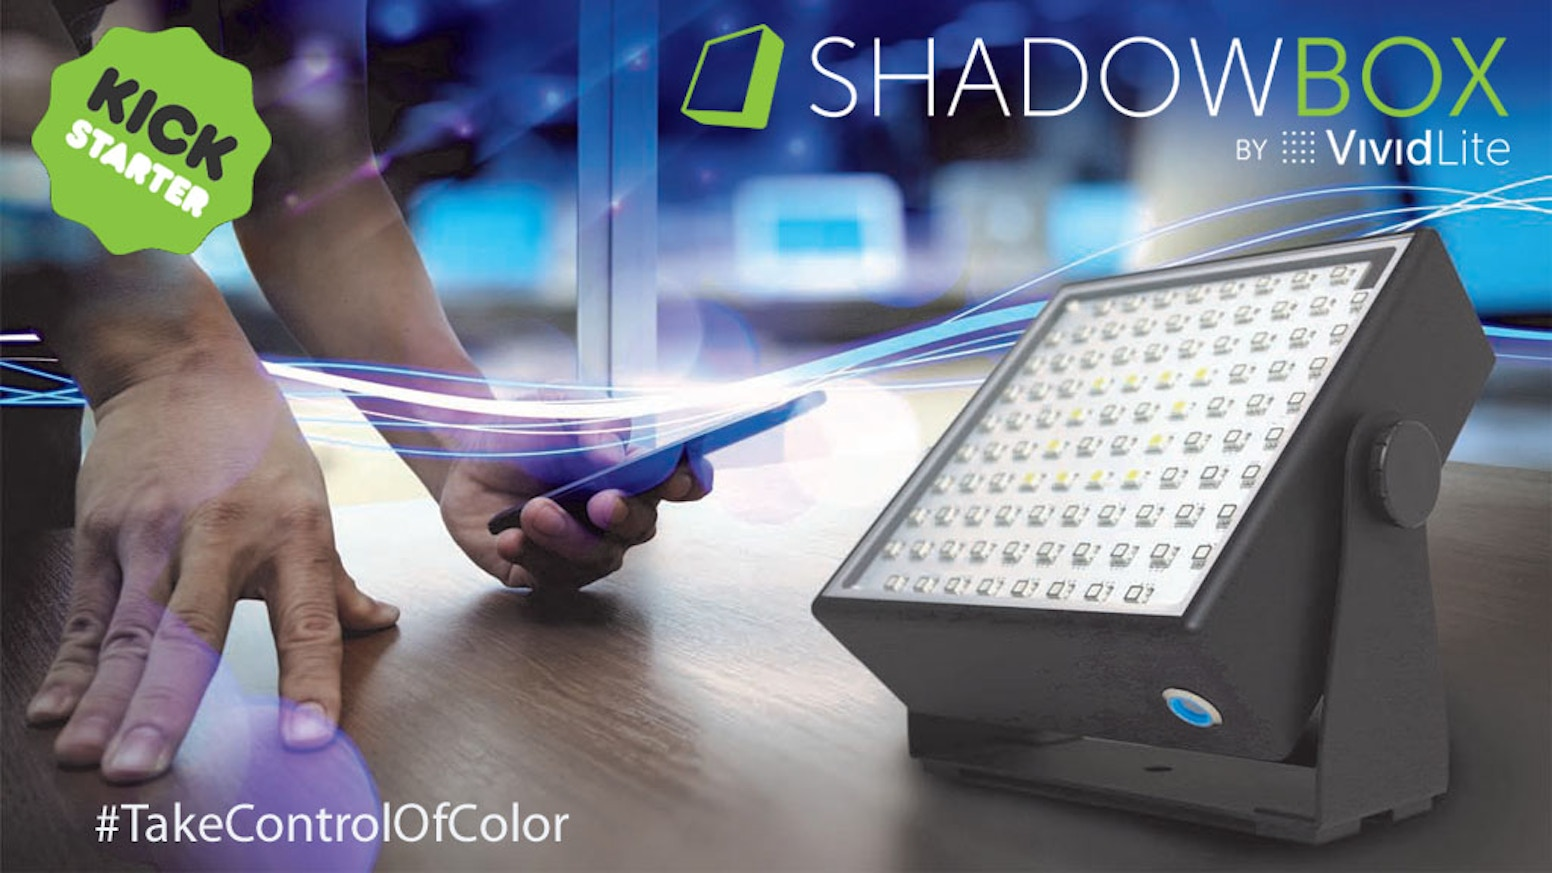 Take Control of Color with Just the Touch of an App! The Ultimate Wireless LED Light, Super Bright, and It Can Even Get Wet!